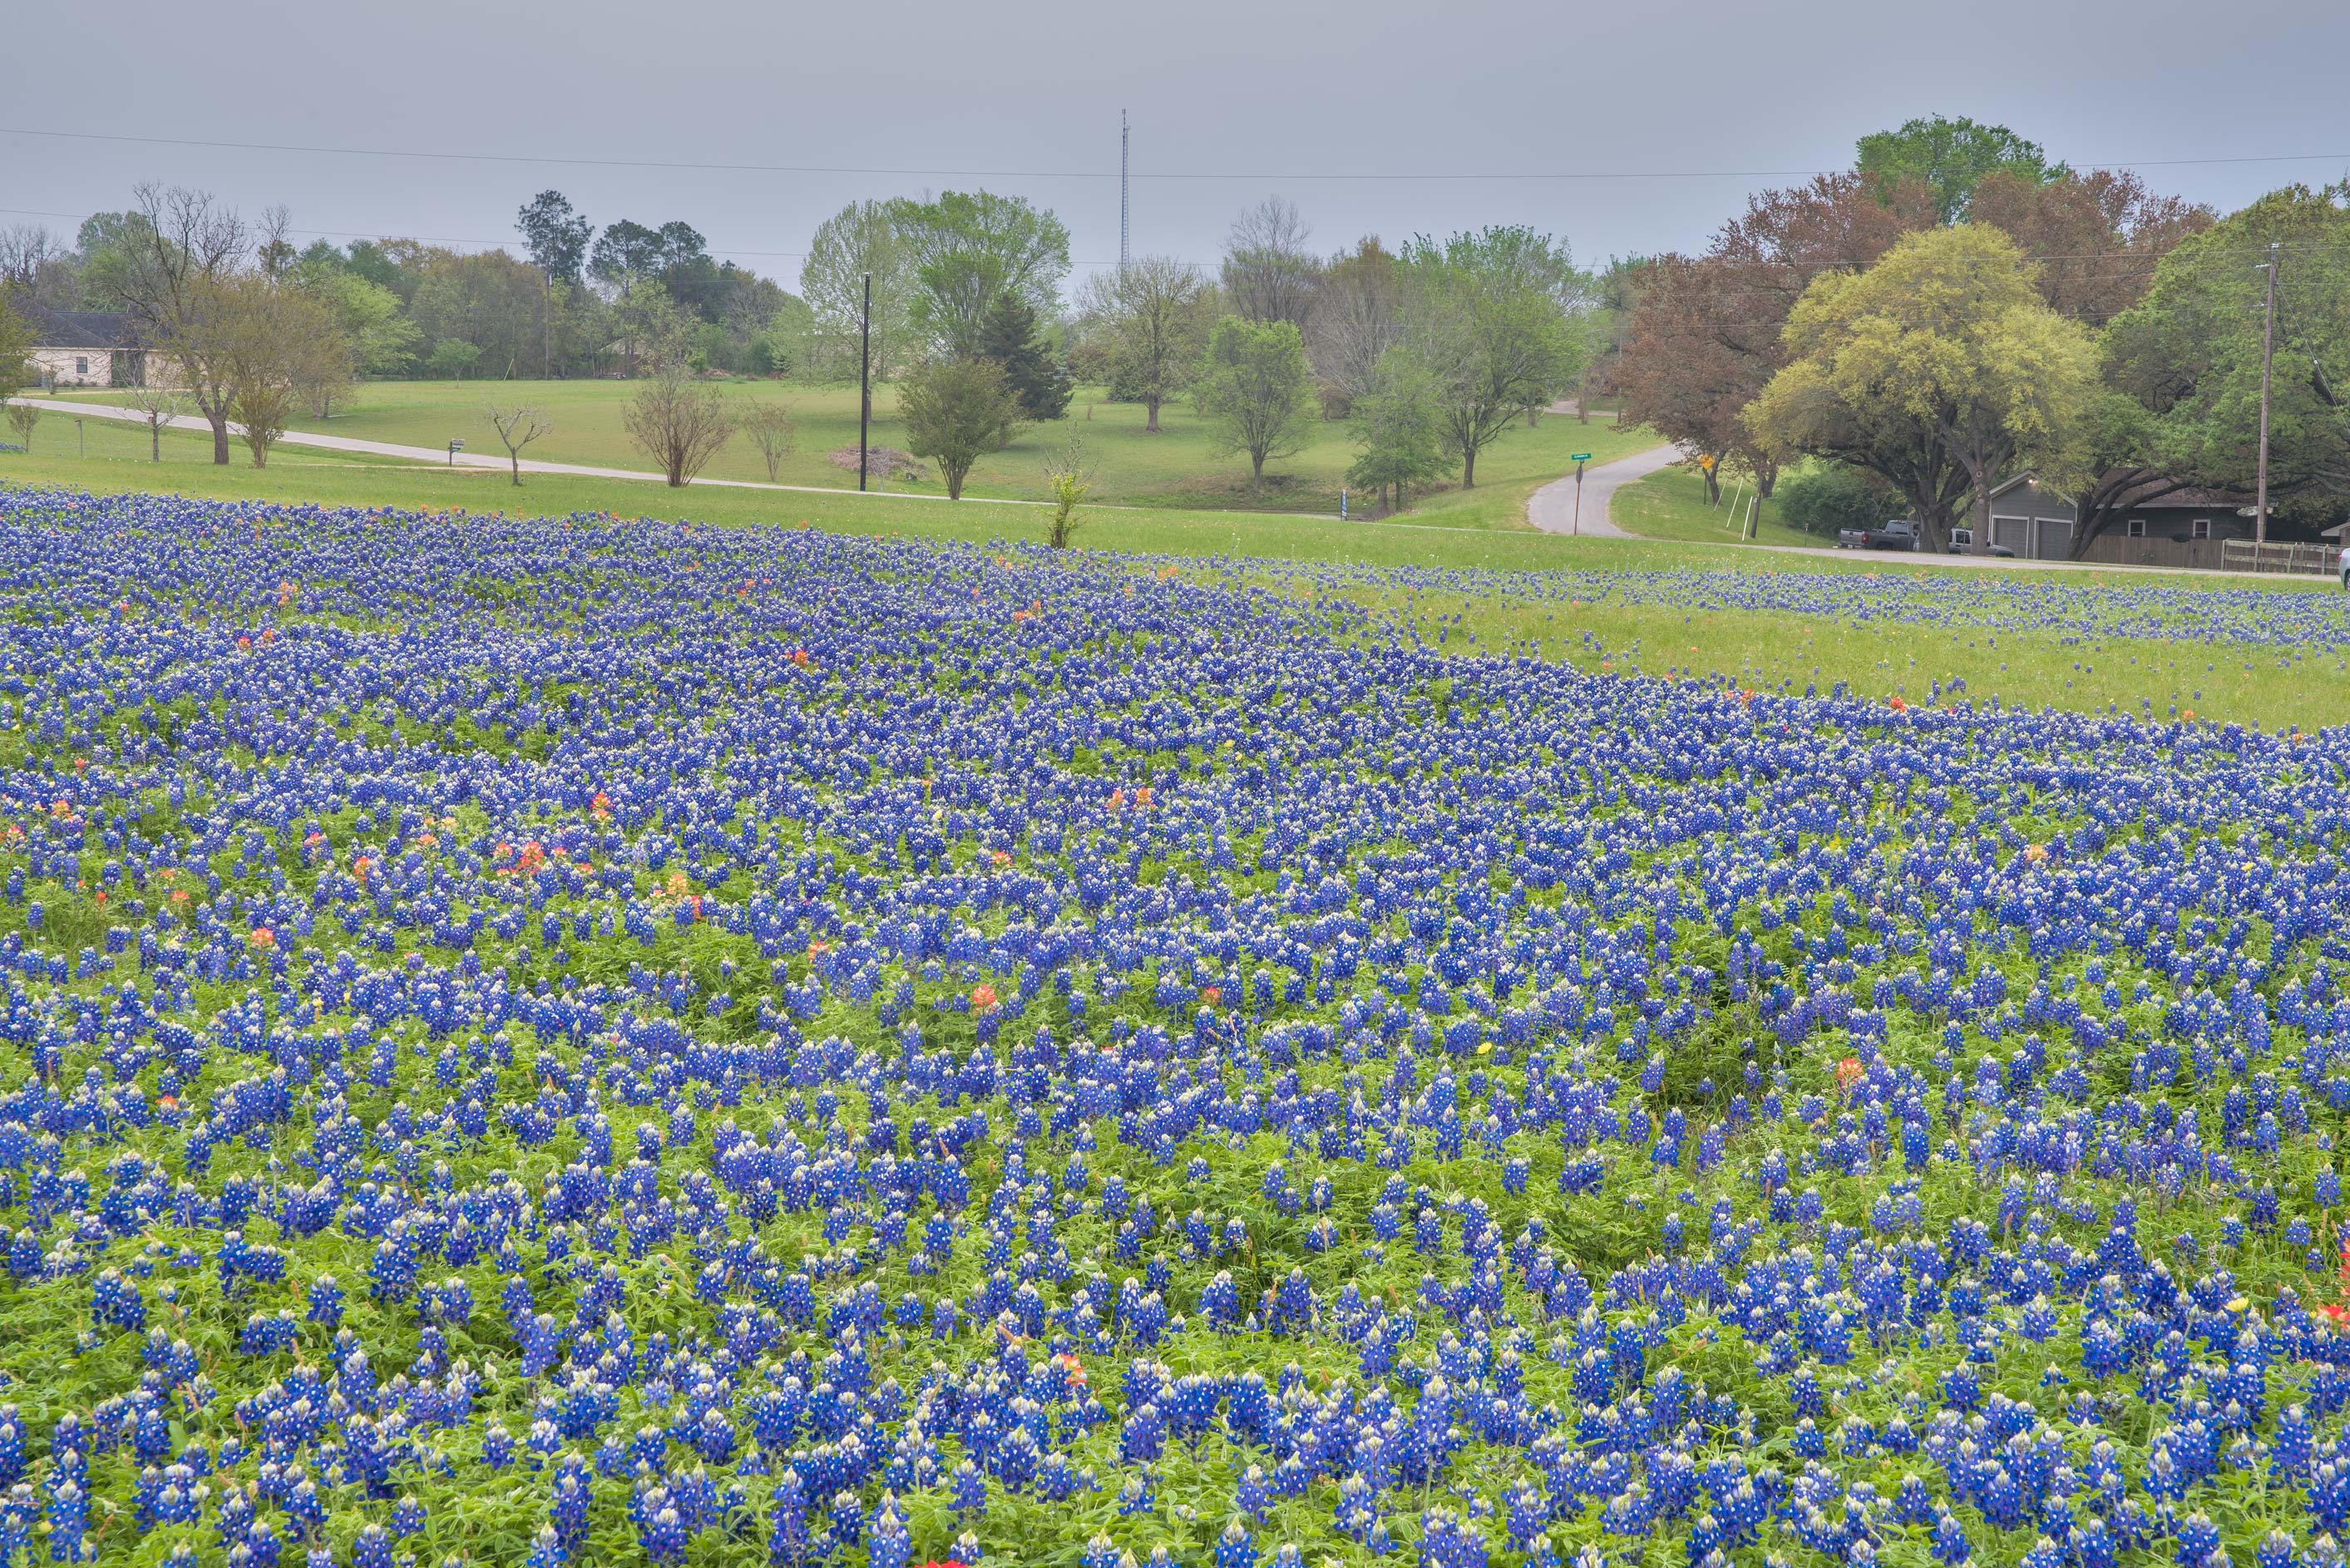 Field of bluebonnet flowers north from Chappell Hill. Texas